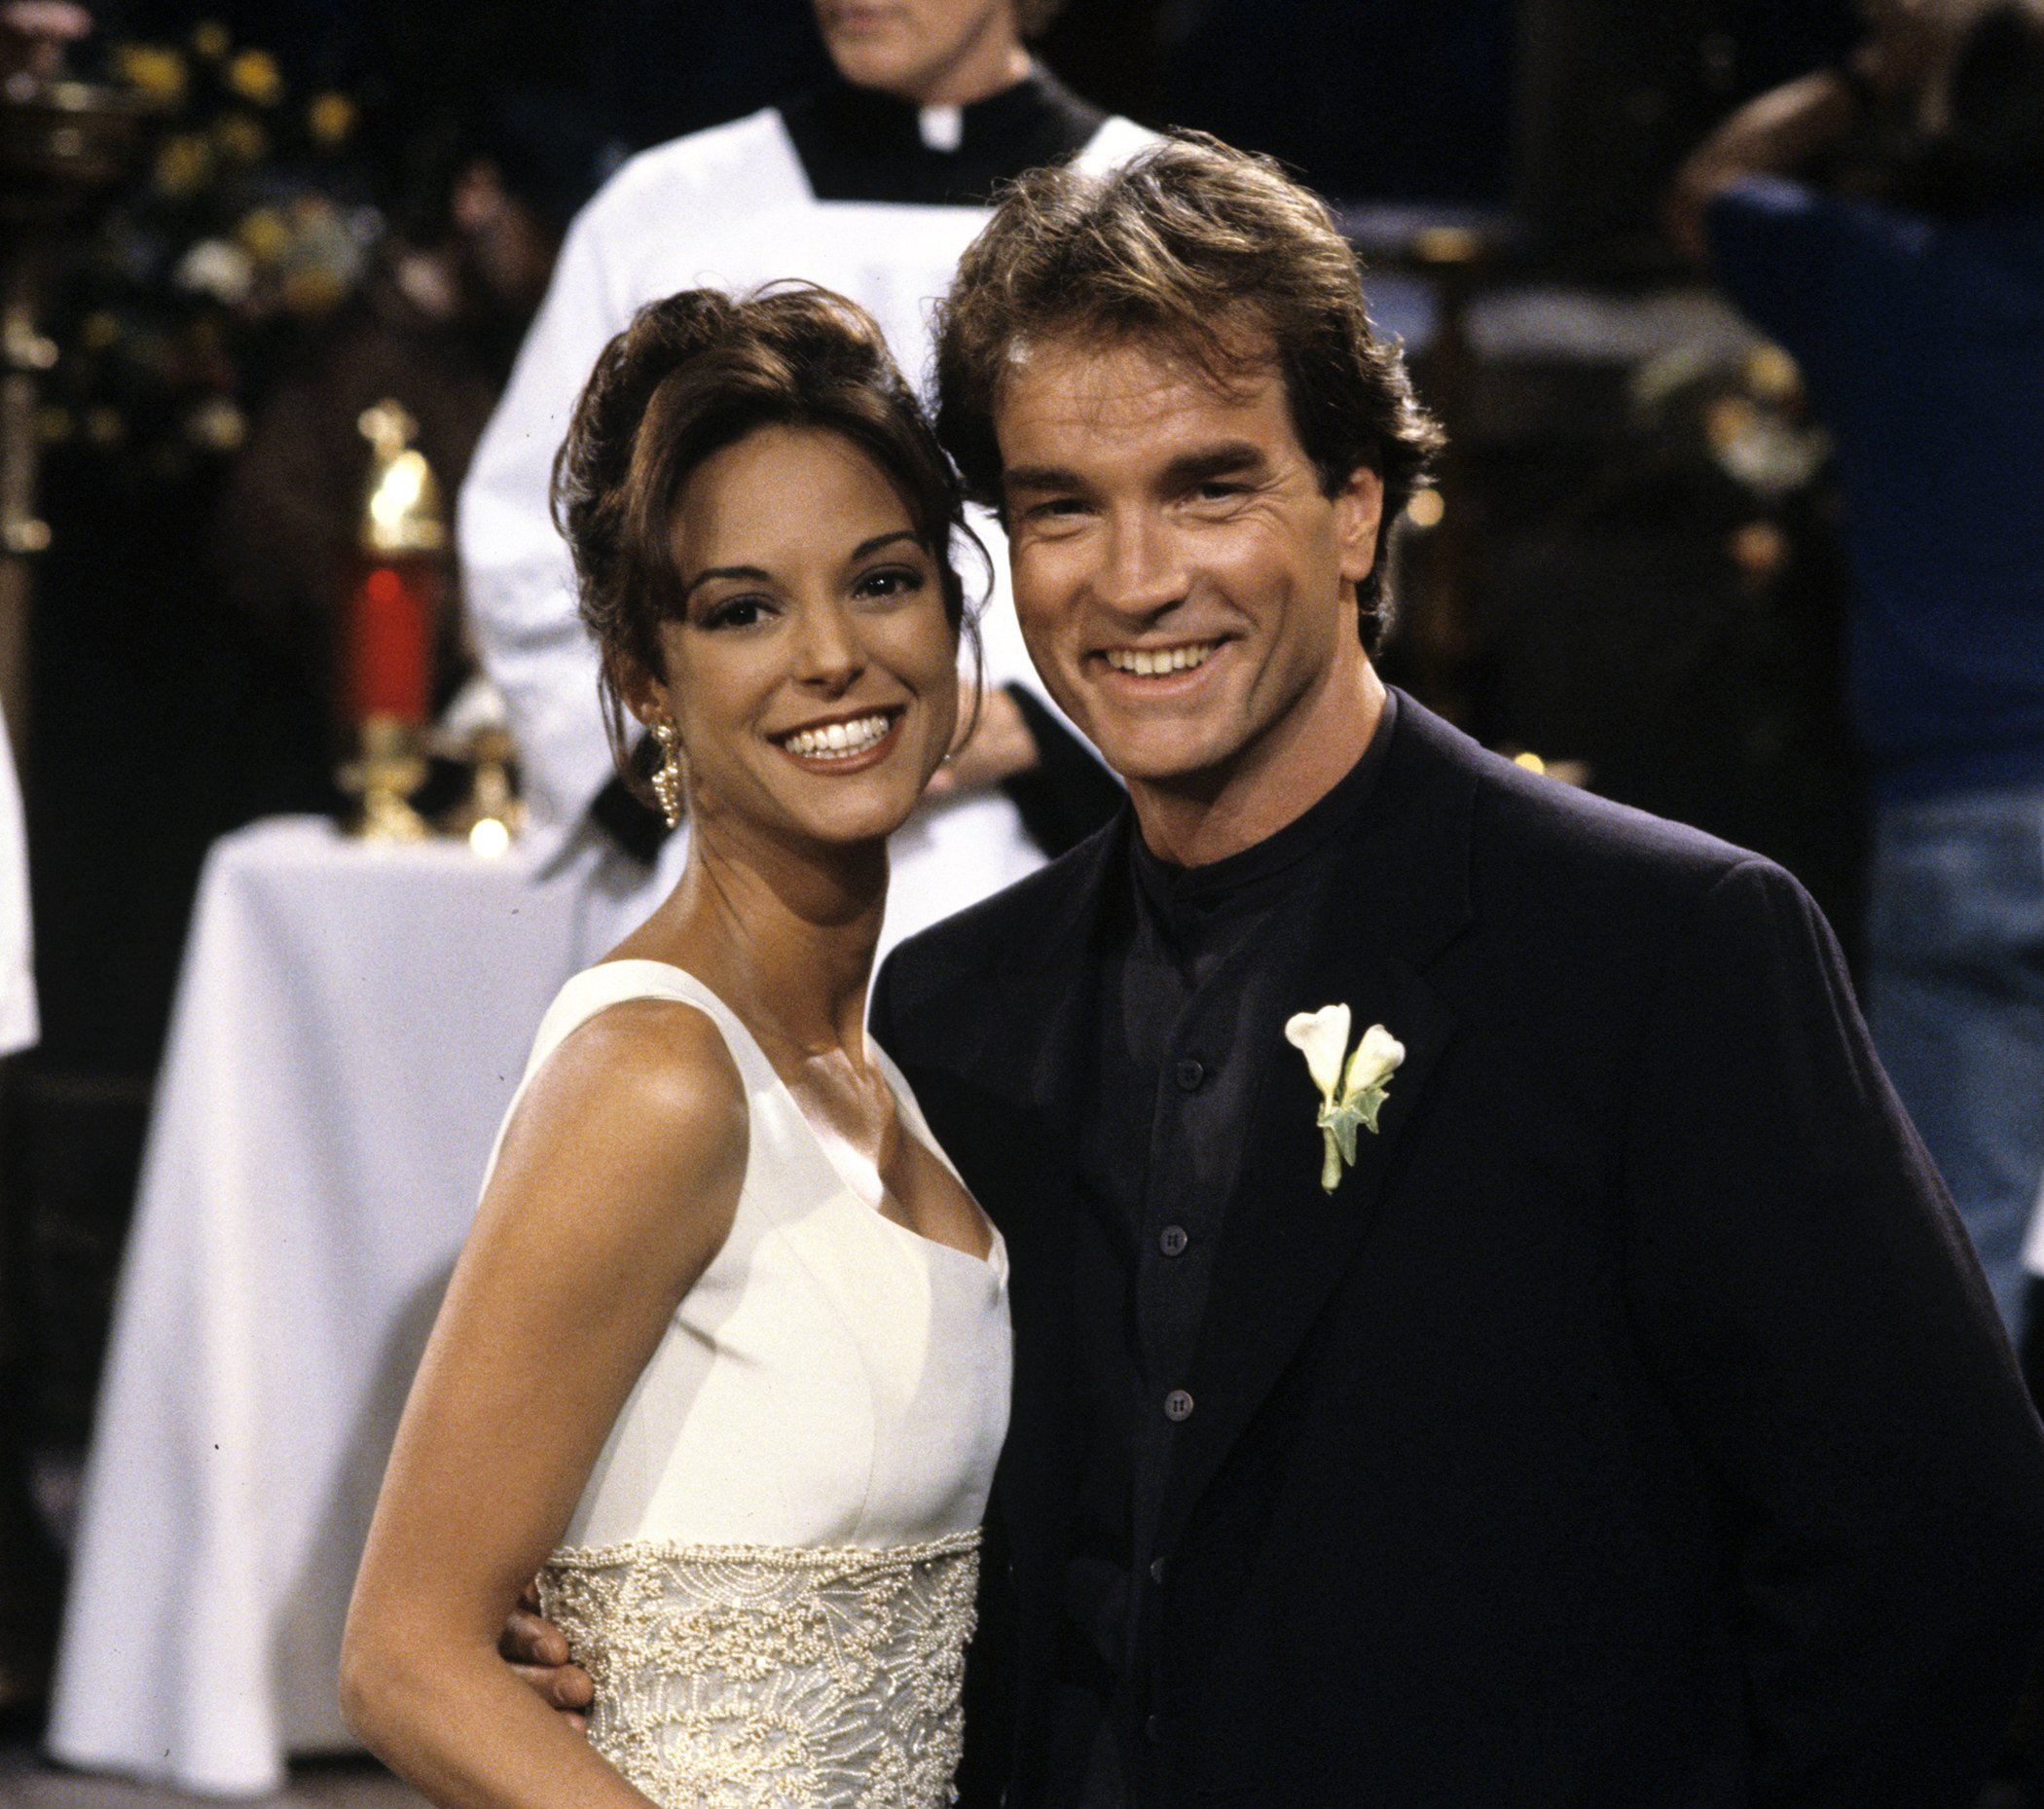 """Eva LaRue and John Callahan during their 1995 wedding scene of the TV show """"All My Children."""" 